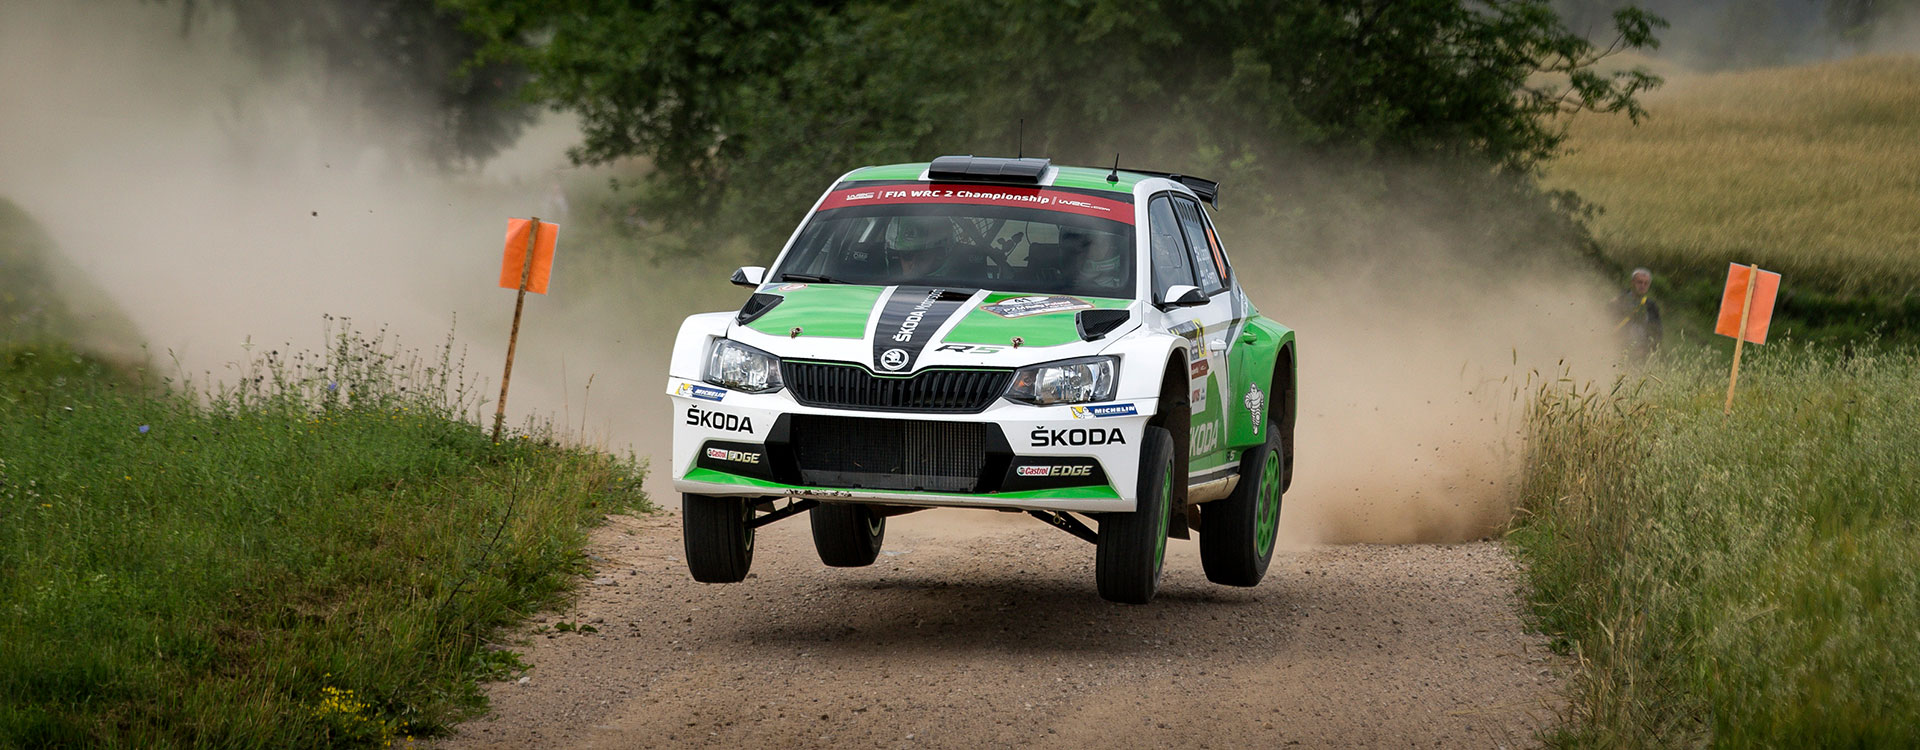 WRC Great Britain: Three ŠKODA drivers set sights on the title